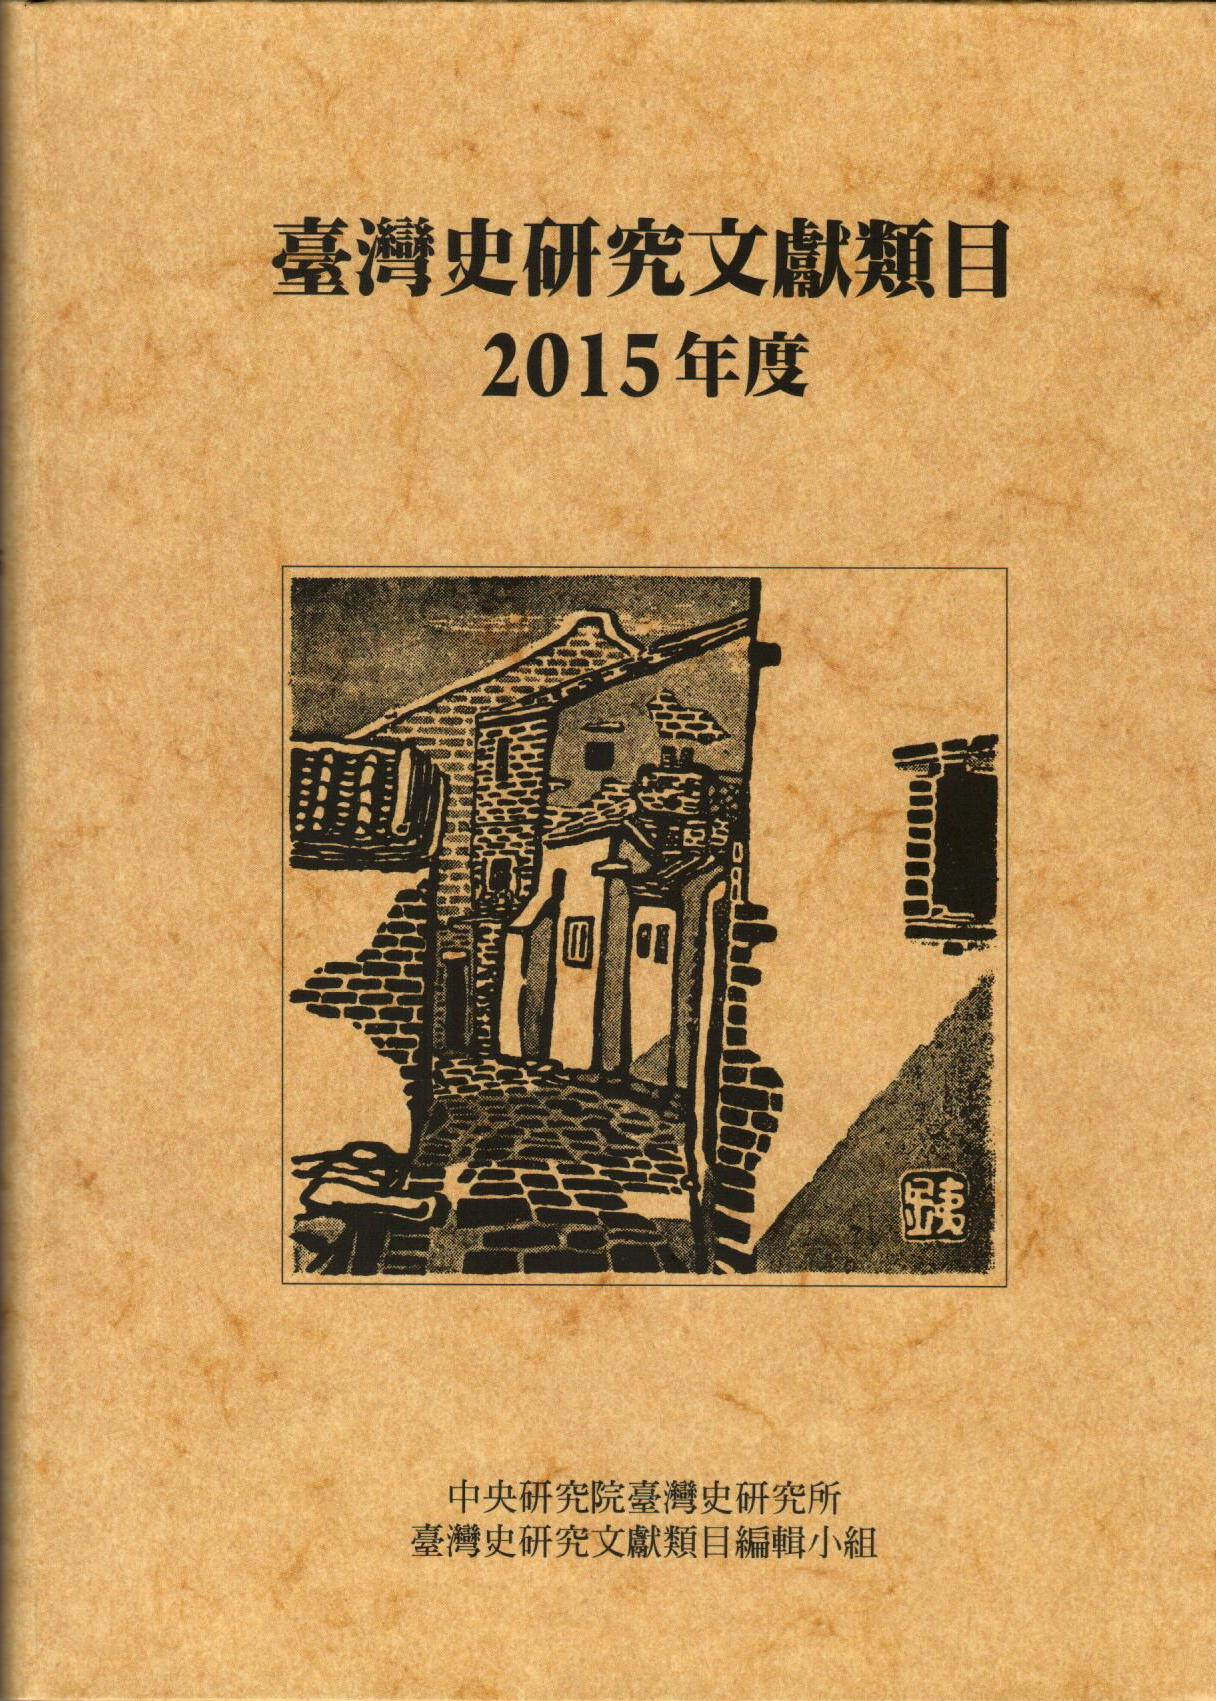 Annual Bibliography of Taiwan History Research (2015)